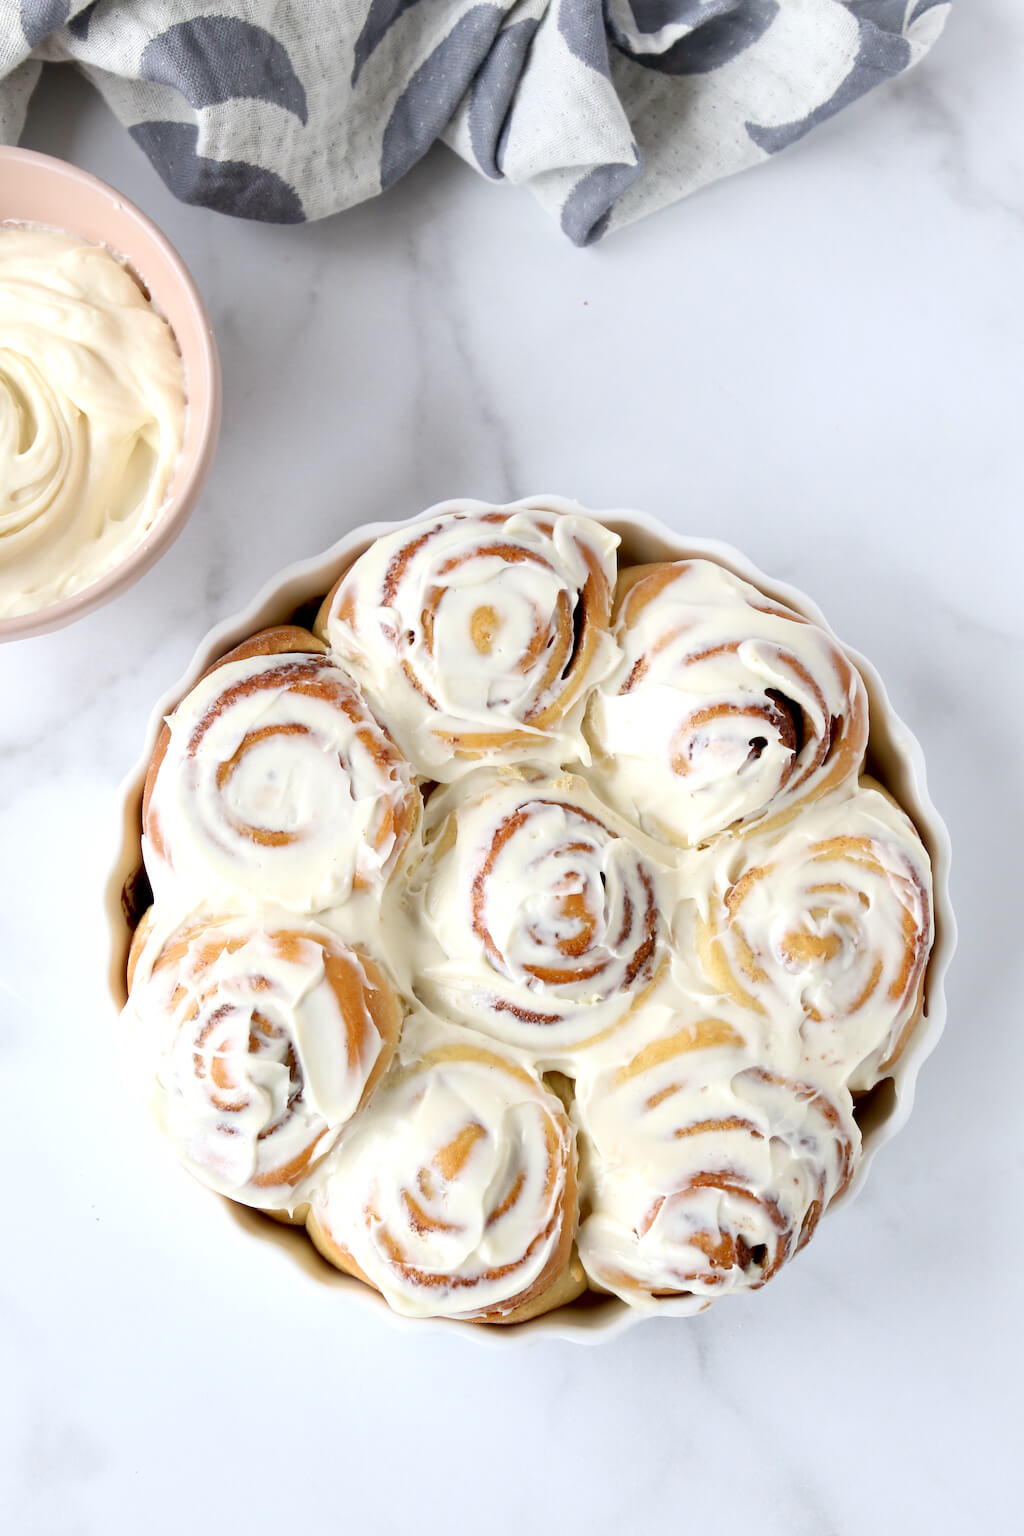 a tray of cinnamon rolls covered in cream cheese frosting